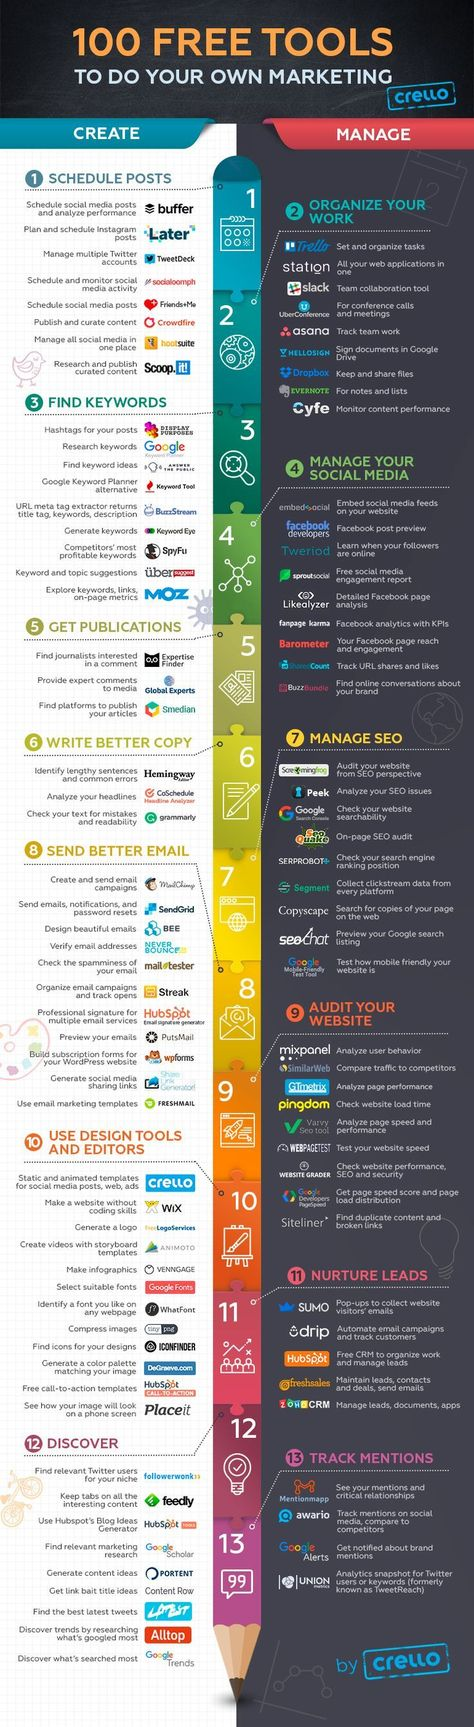 100 Free Marketing Tools to Help You Grow Your Business  | B2B Email Marketing Examples |  Em...